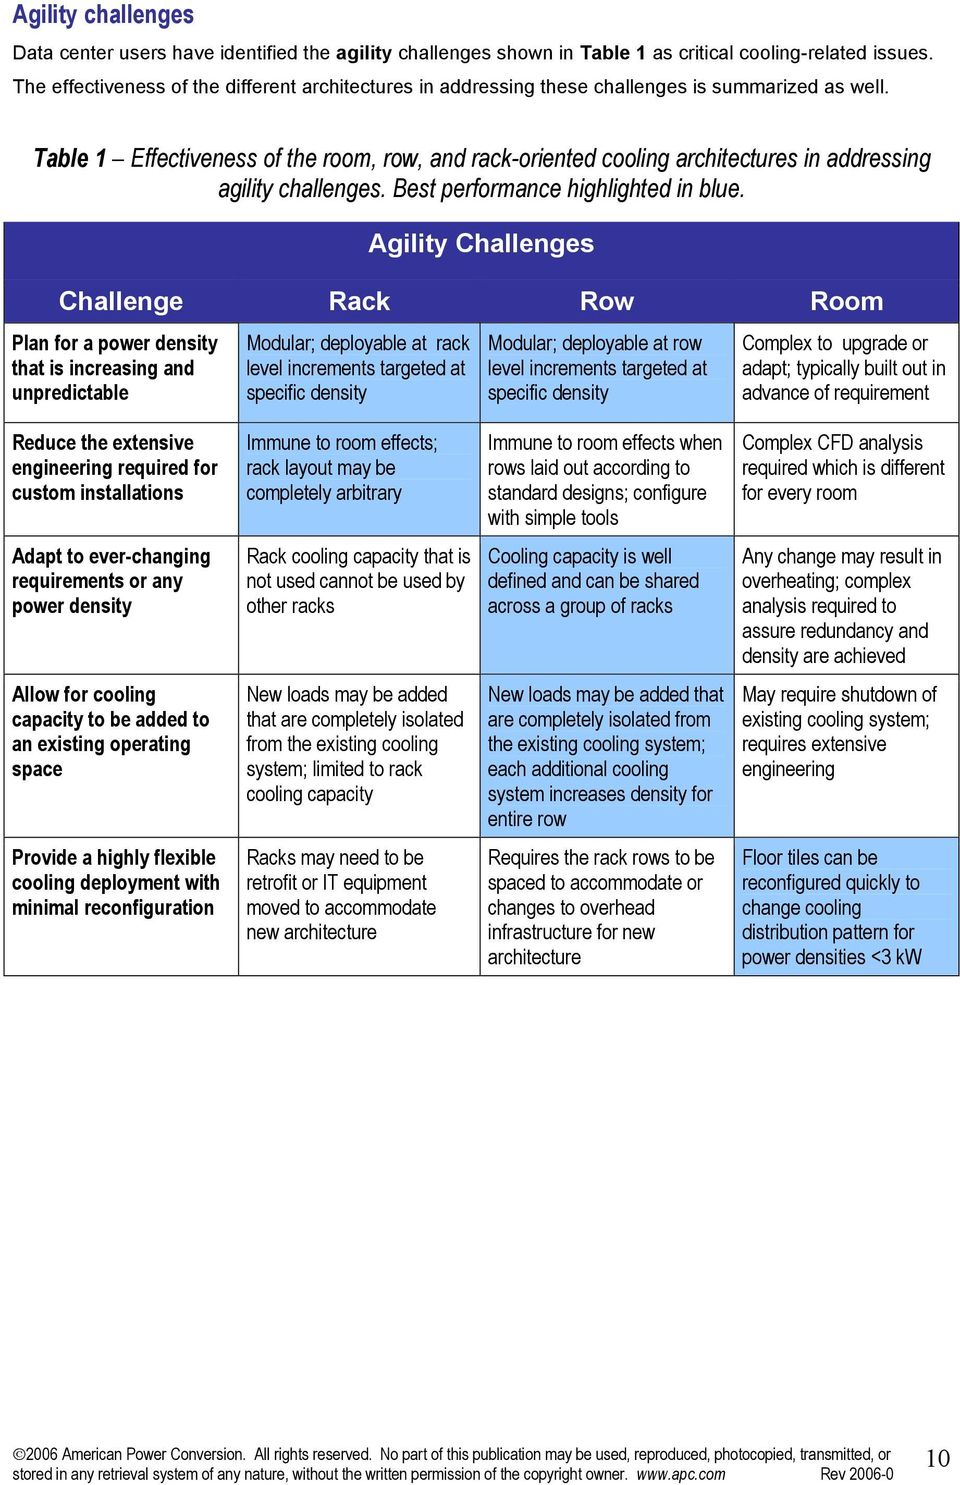 Table 1 Effectiveness of the room, row, and rack-oriented cooling architectures in addressing agility challenges. Best performance highlighted in blue.